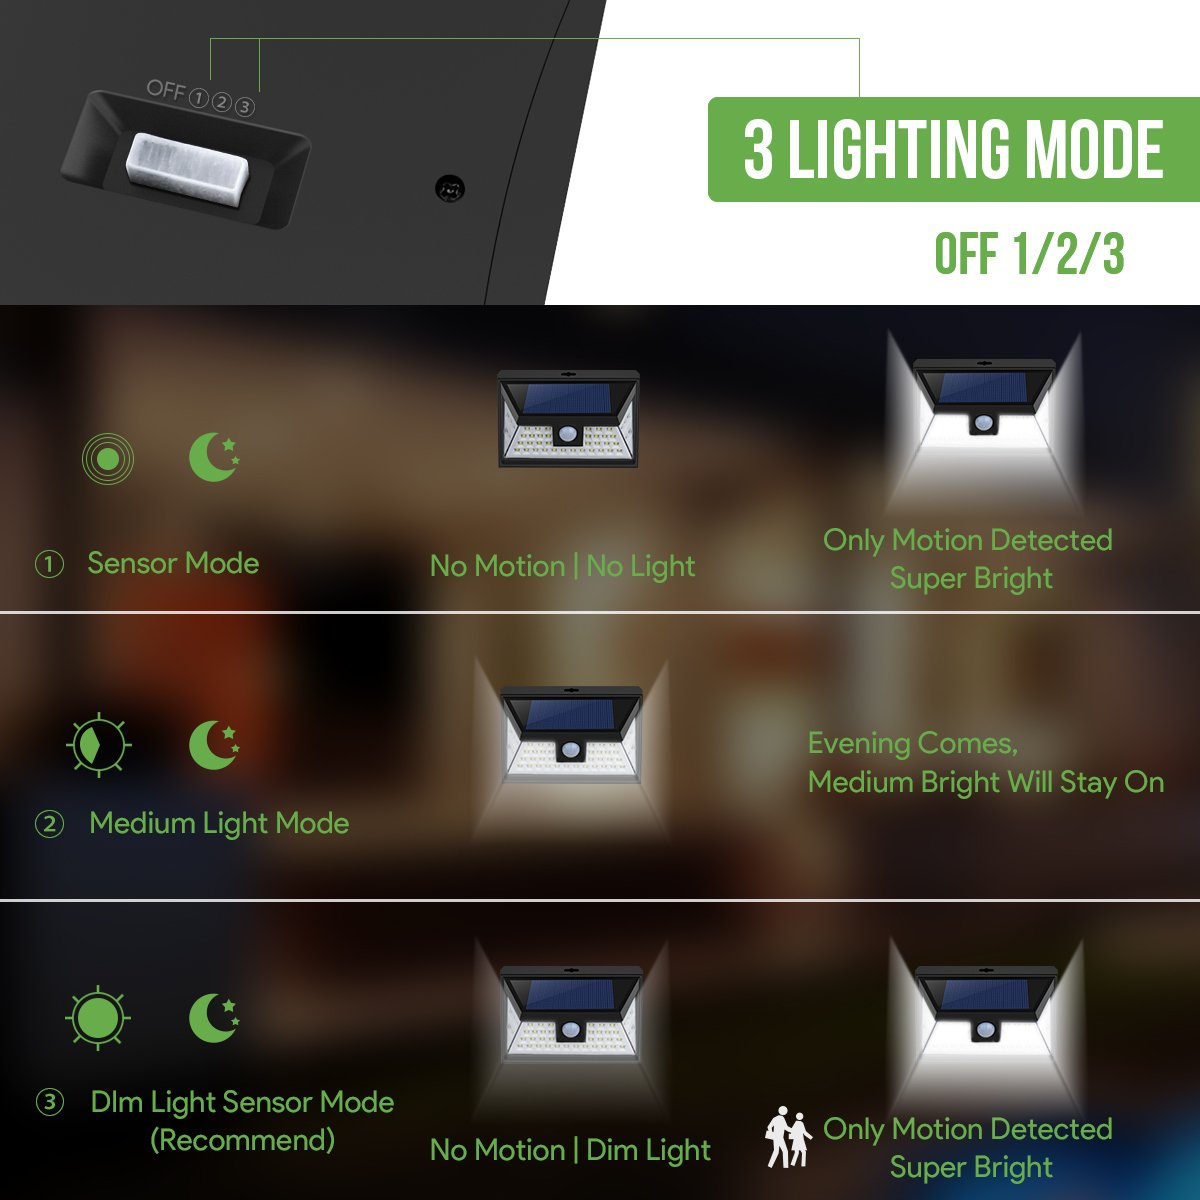 LE 44 LED Solar Powered Lights Outdoor with Motion Sensor, 3 Optional Lighting Modes, 270 Degree Angle, Daylight White 6000K, 4W 550LM, for Garden, Fence, Driveway, Front Door and More, Pack of 4 by Lighting EVER (Image #6)